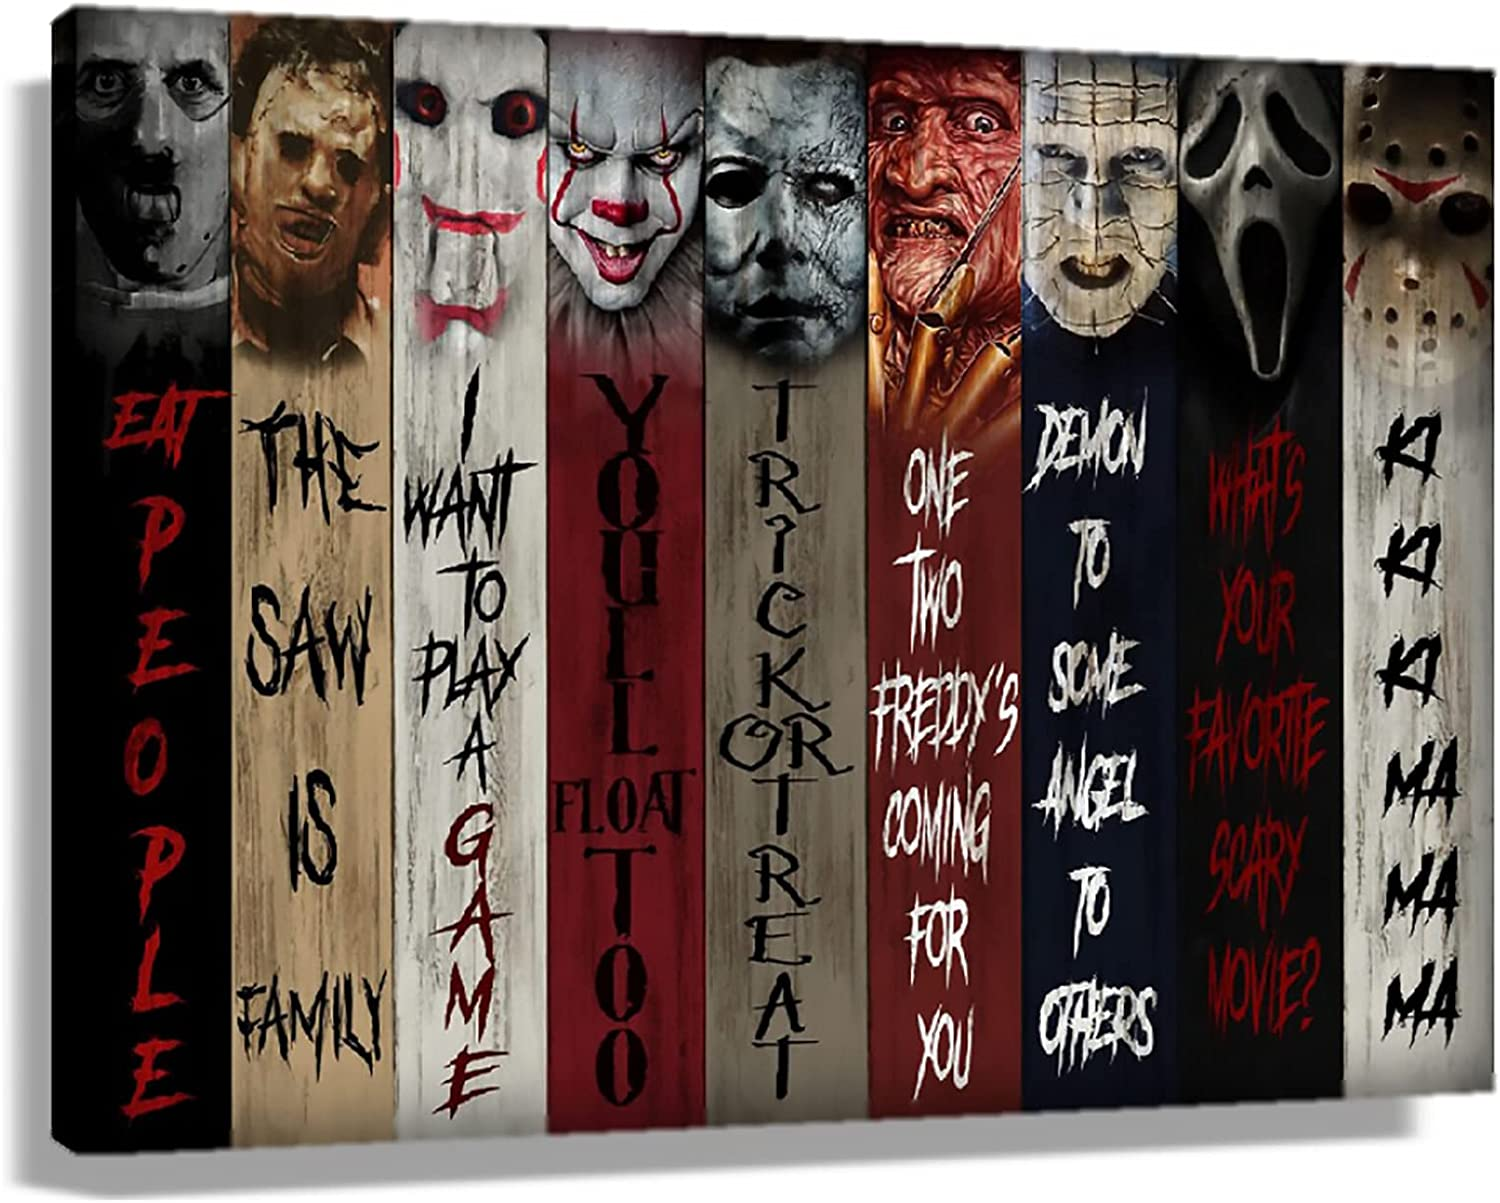 Horror Movie Poster Decor Pennywise Hannibal Lecter Villains Characters Terror Poster Canvas Wall Art Painting Picture Prints for Bedroom,Halloween Gifts Unframed 12x18 inch(30x45cm)